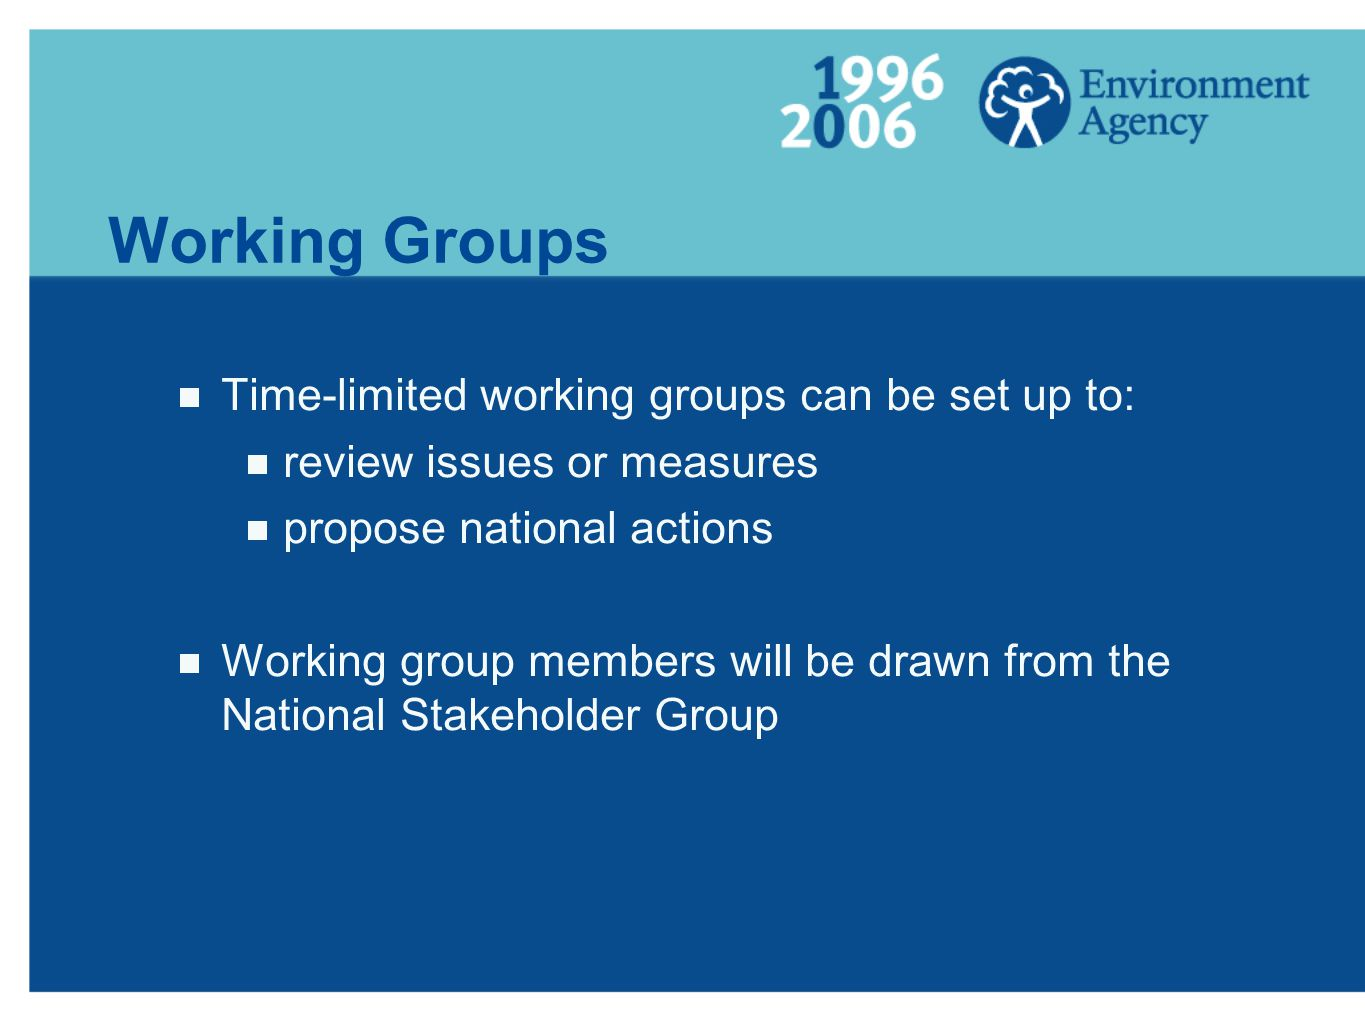 Working Groups Time-limited working groups can be set up to: review issues or measures propose national actions Working group members will be drawn from the National Stakeholder Group